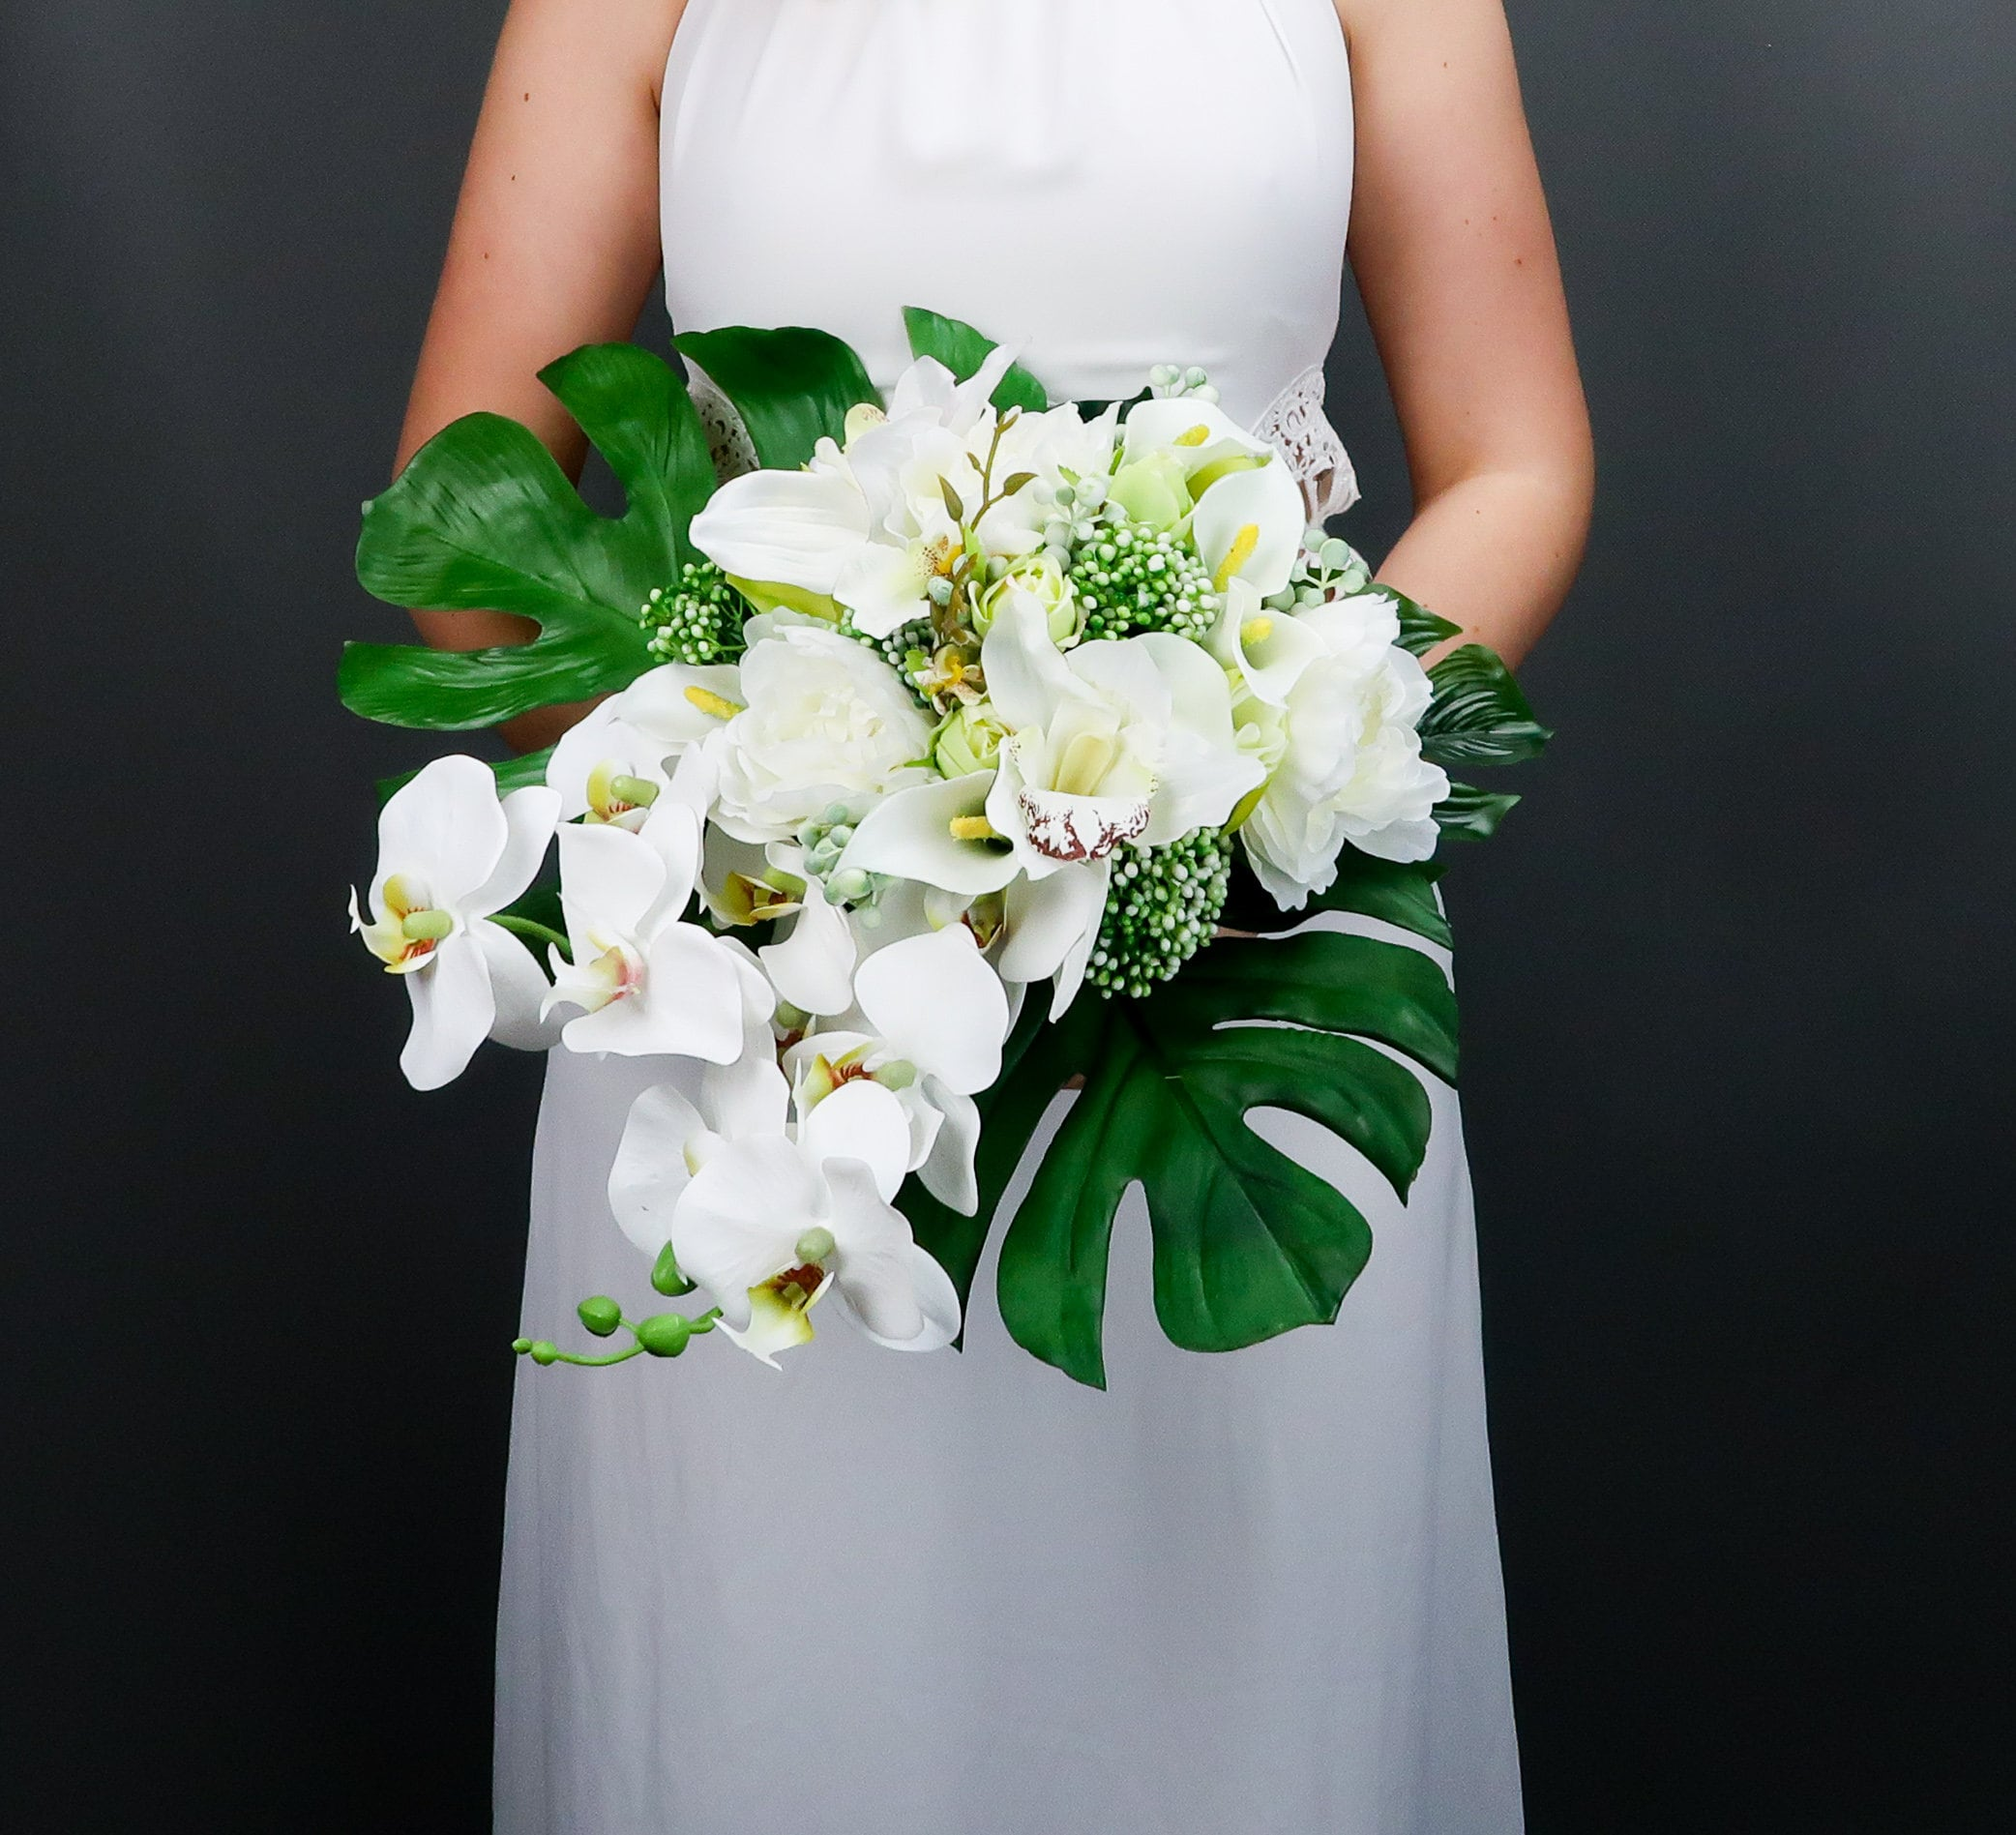 Tropical Wedding Bouquet With White Orchids And Greenery